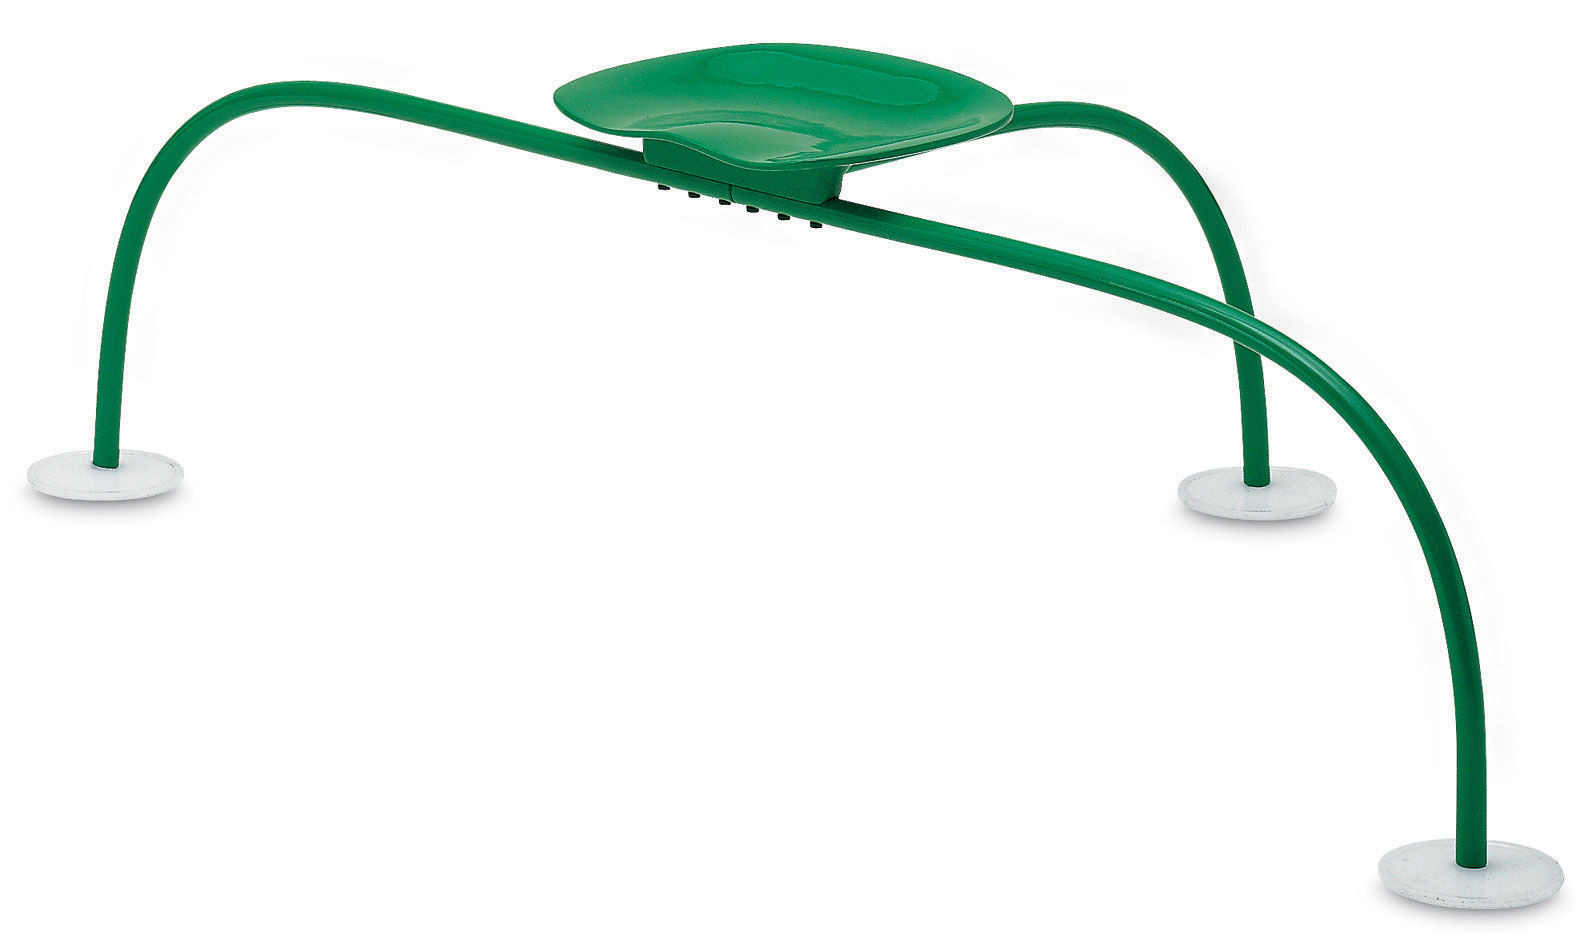 Furniture - Stools - Allunaggio Stool by Zanotta - Green - Grass - Aluminium, Steel